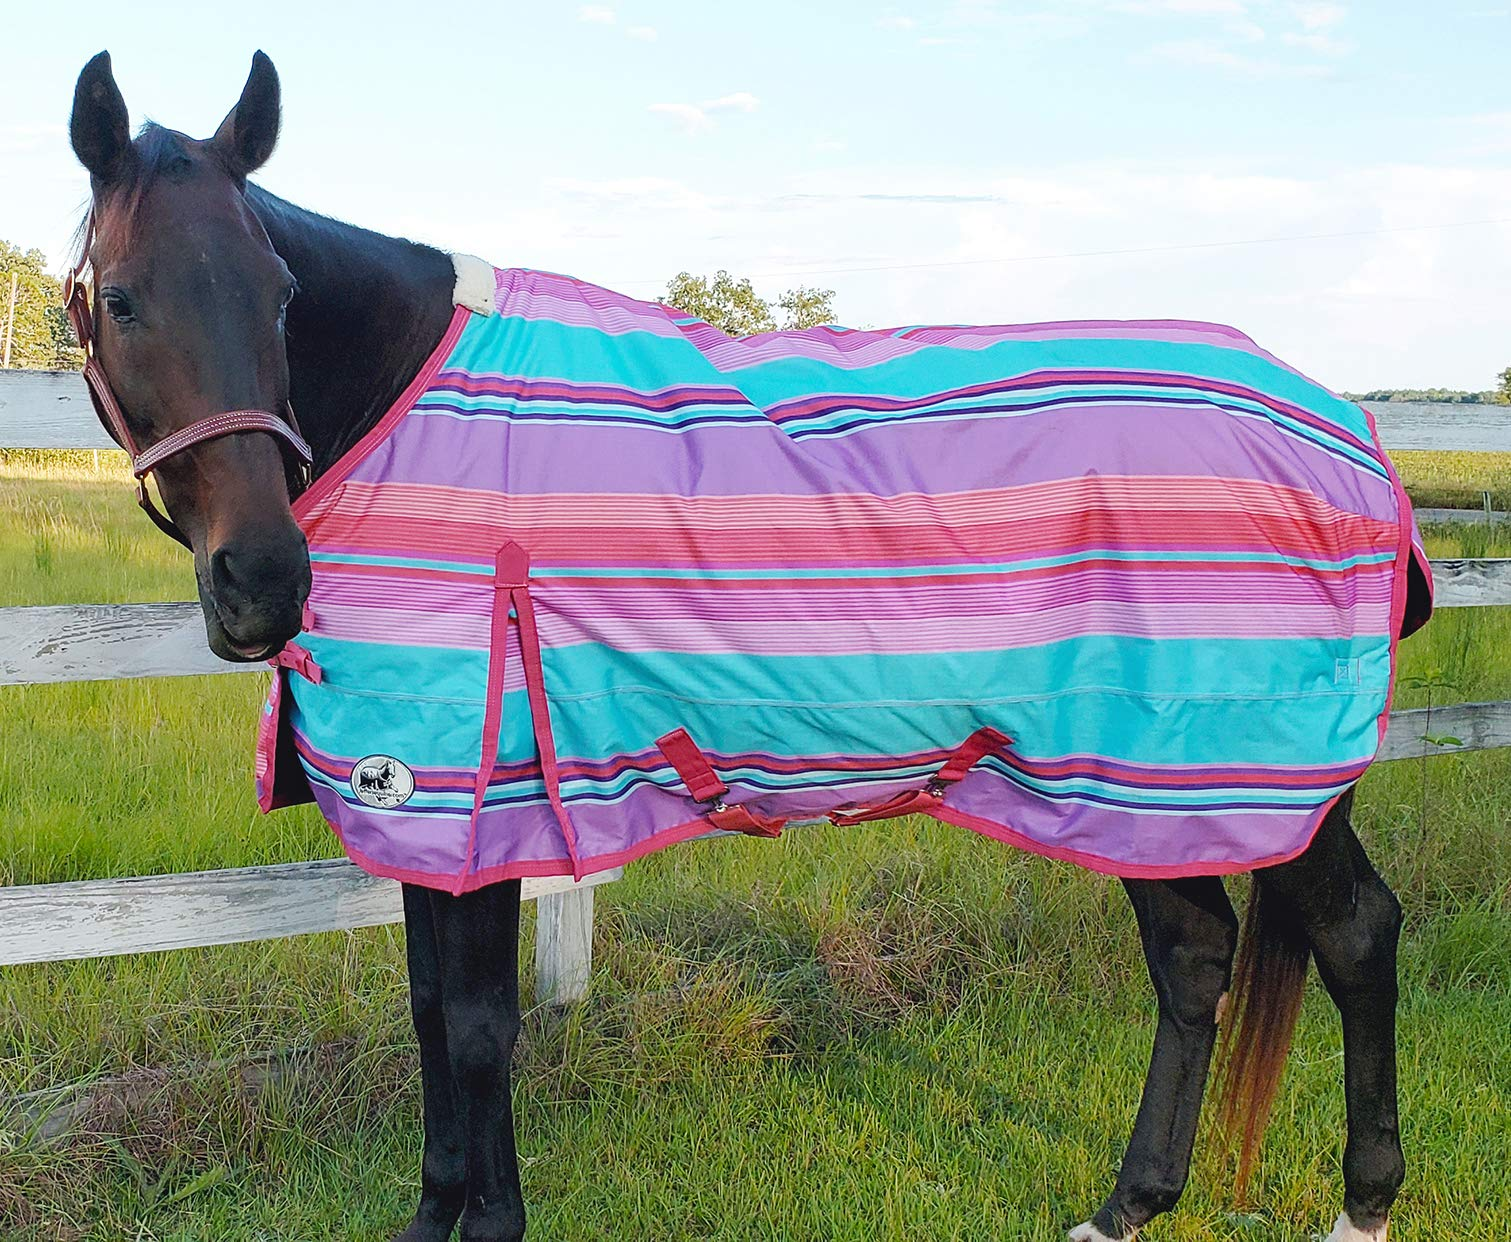 Jeffers 600D Sunset Serape Expression Horse Turnout Blanket, 240g by Jeffers